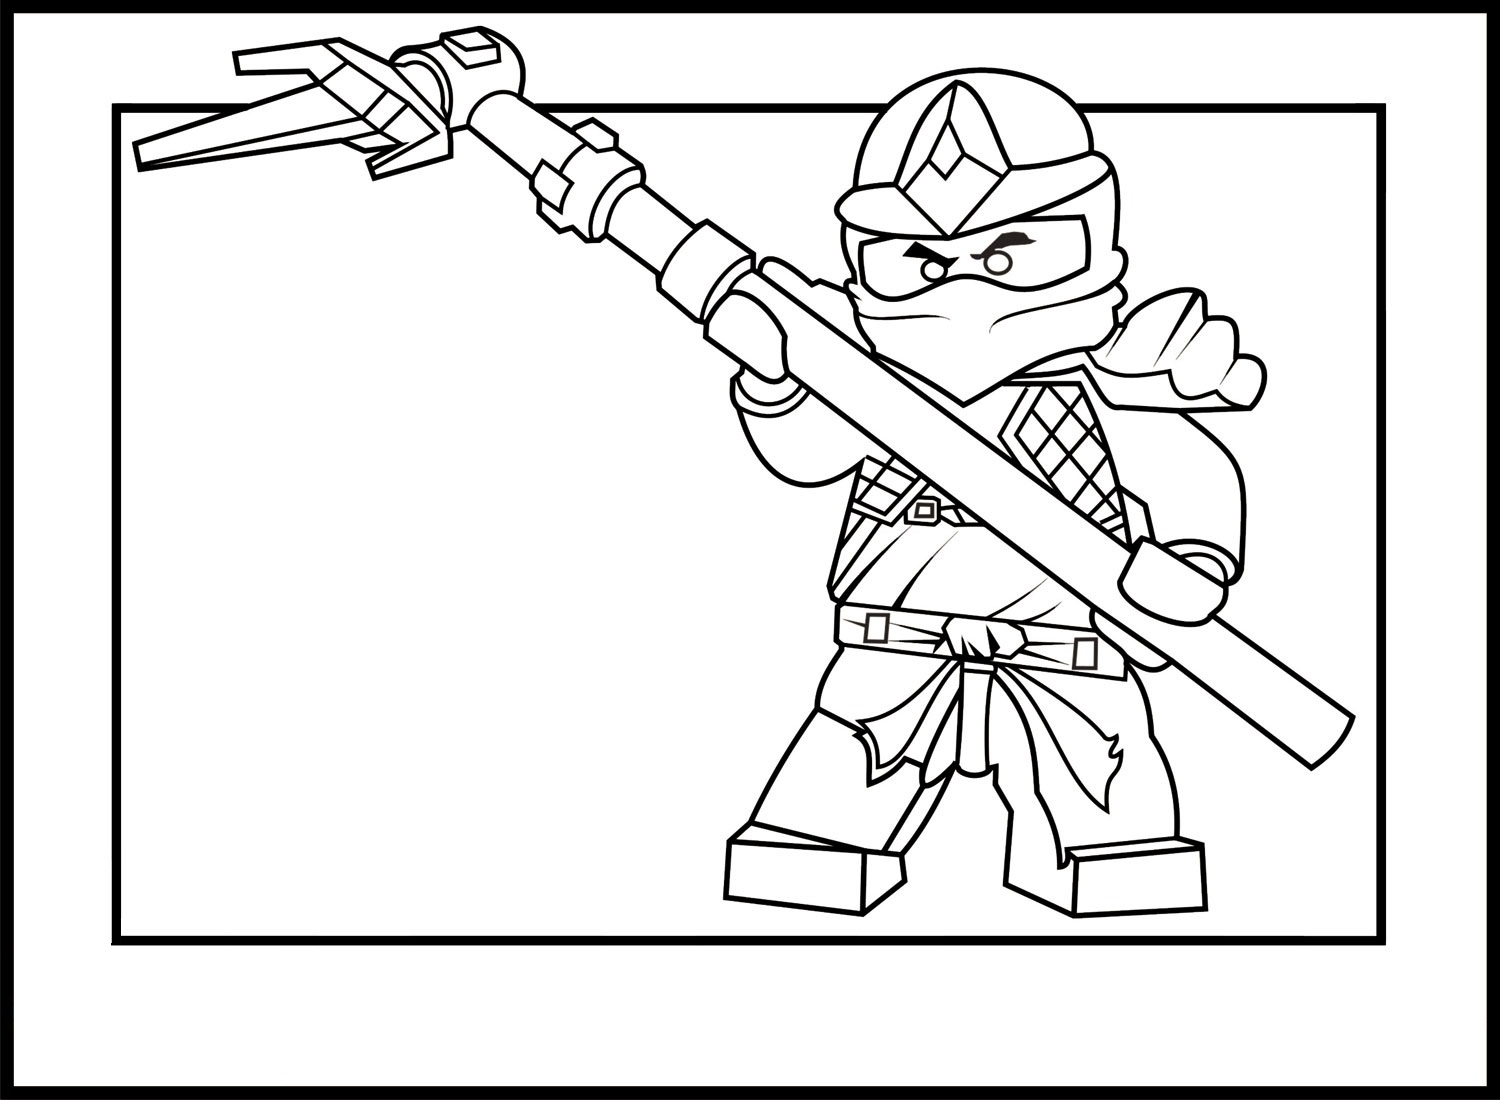 Cole ninjago coloring games online for kids - Ninjago Kai Coloring Pages